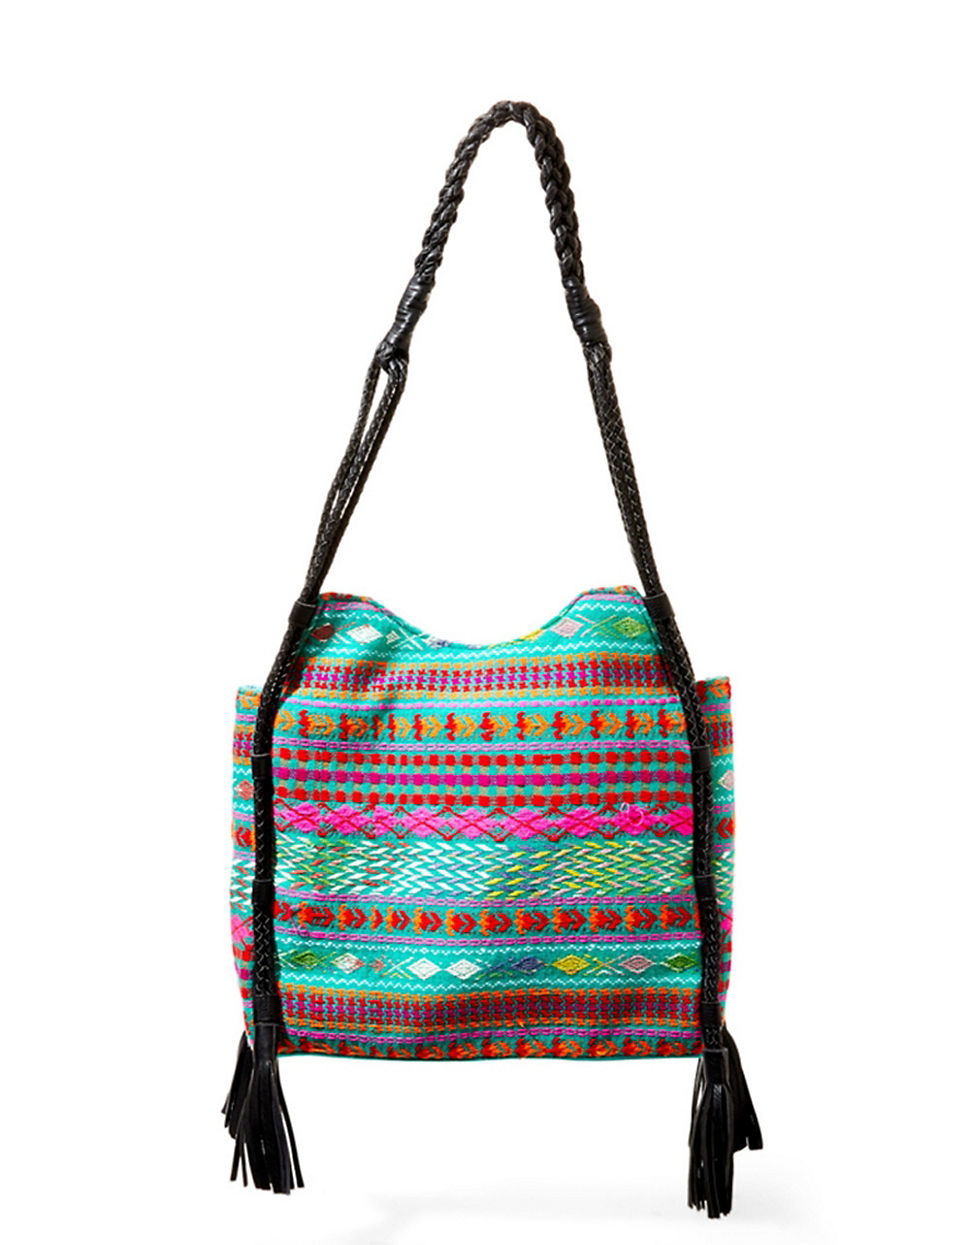 Steven by steve madden Briella Embroidered Hobo Bag | Lyst